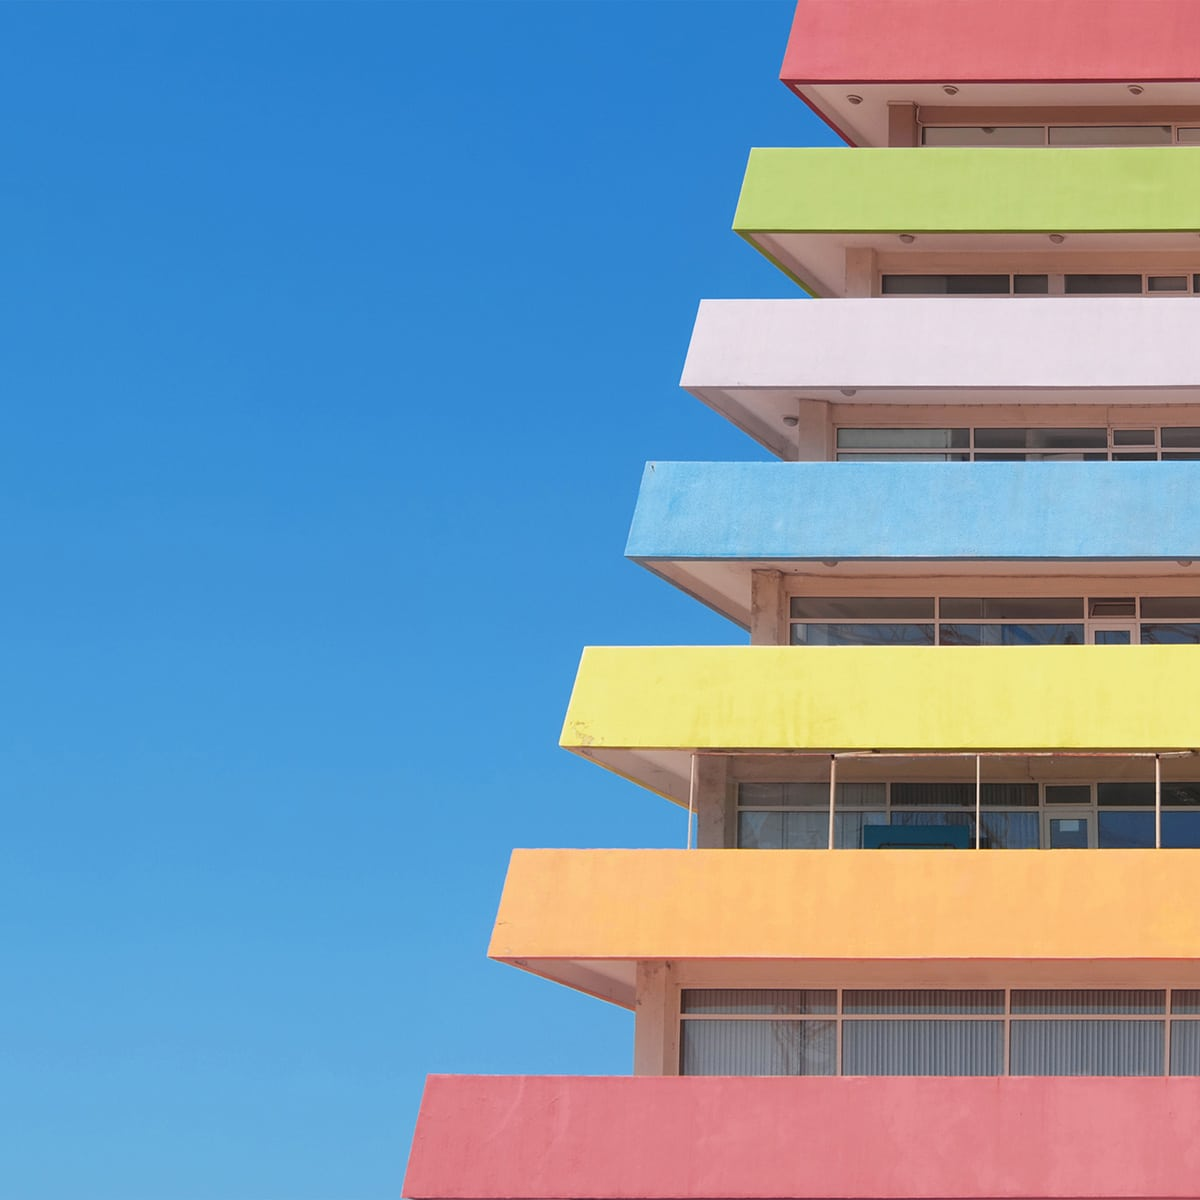 Detail of Multi Colored Building in Turkey